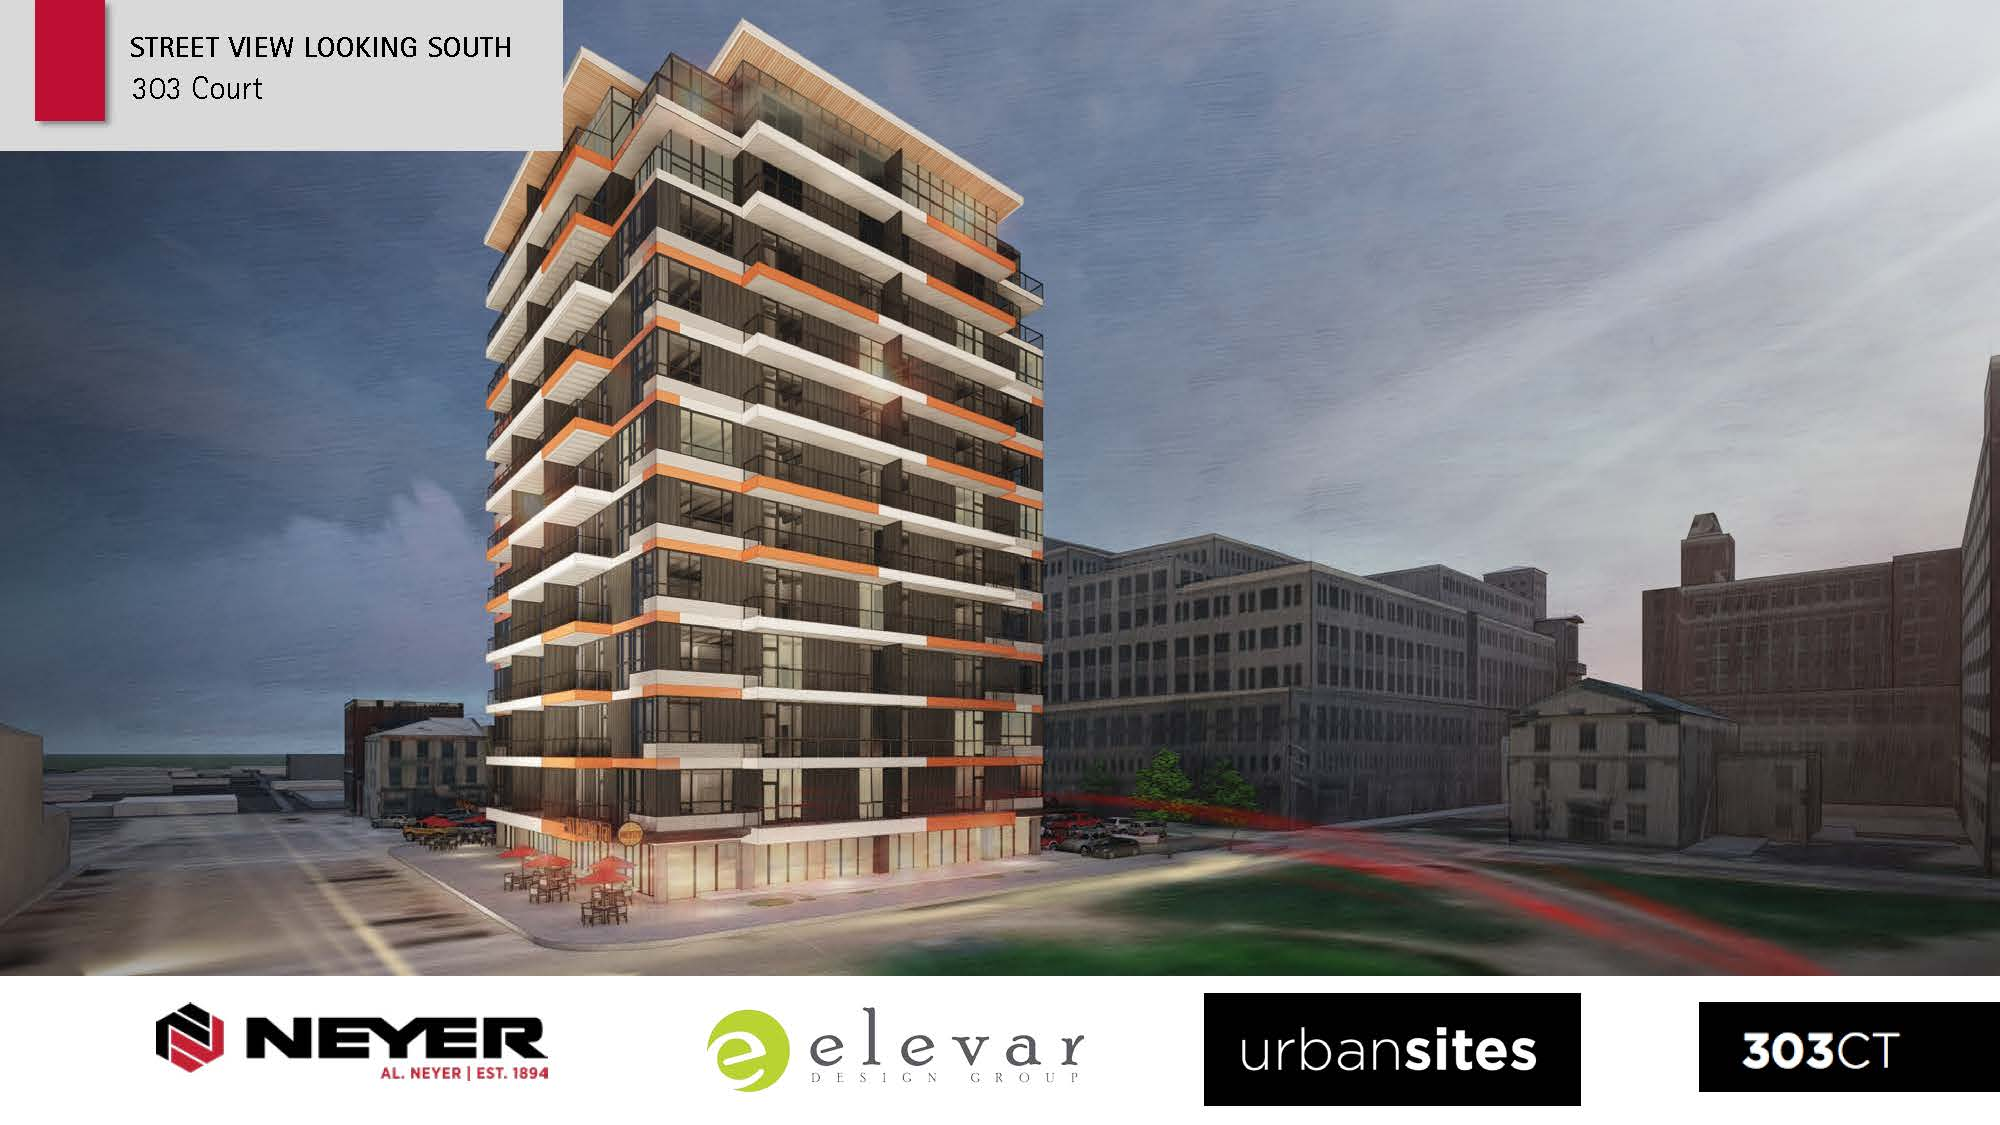 Updated 303 Court Street Design Rendering - Street View Looking South